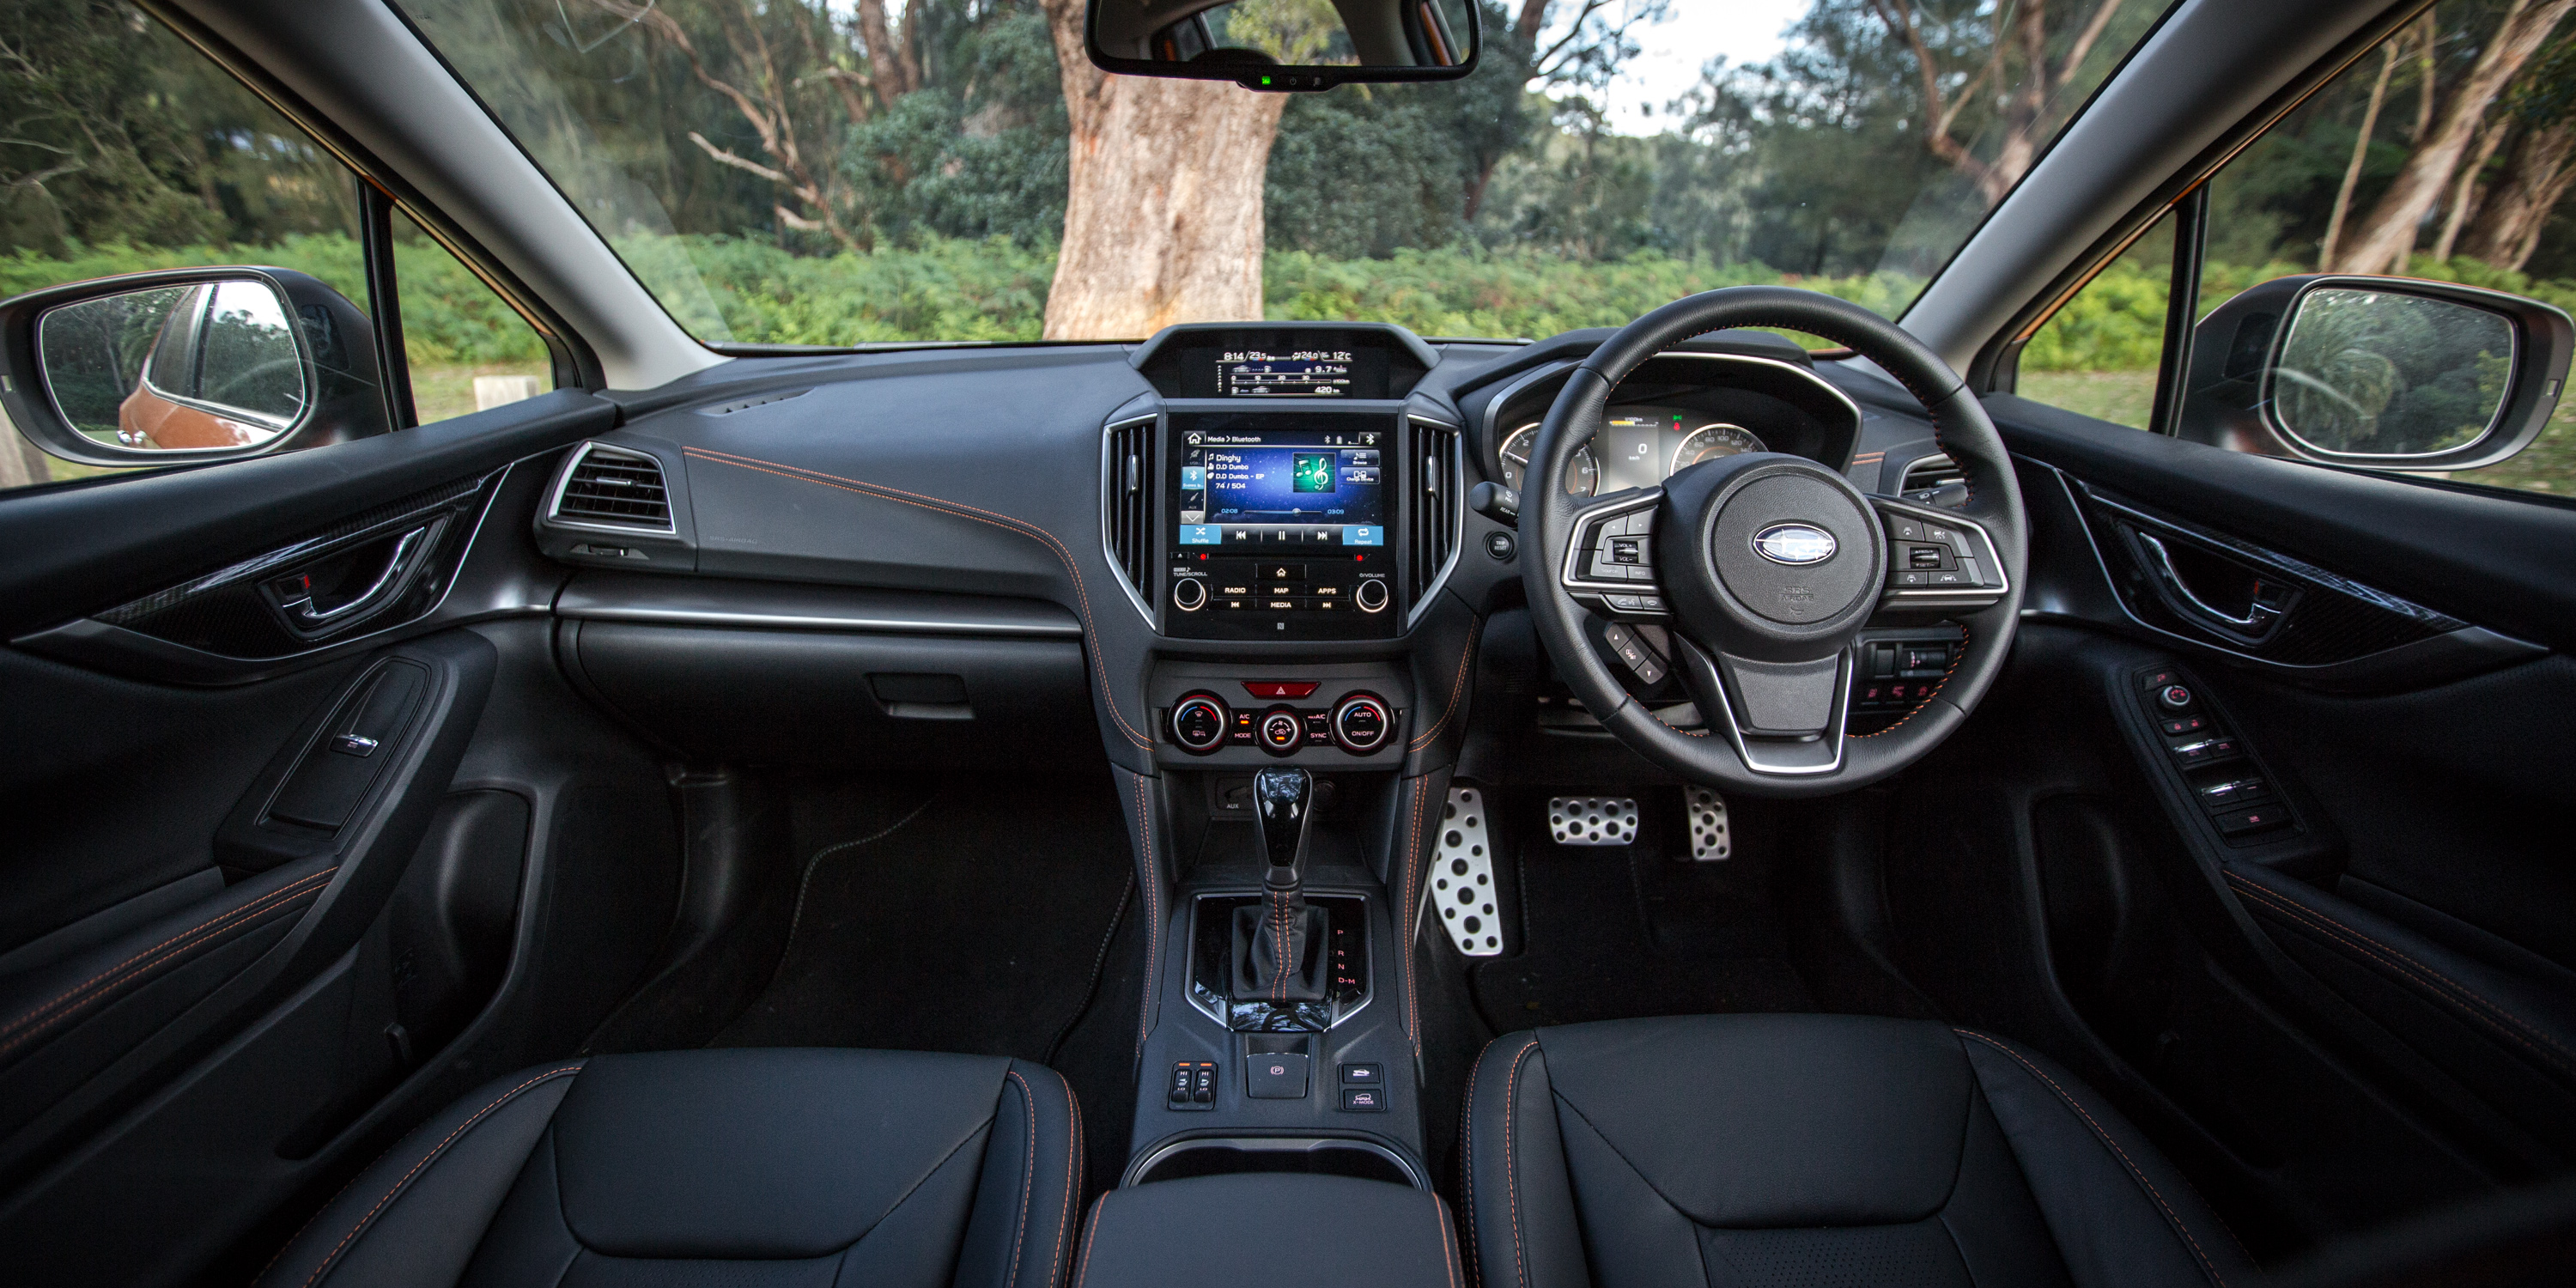 100 subaru xv interior 2017 2014 subaru xv crosstrek information and photos zombiedrive for Subaru crosstrek 2017 interior